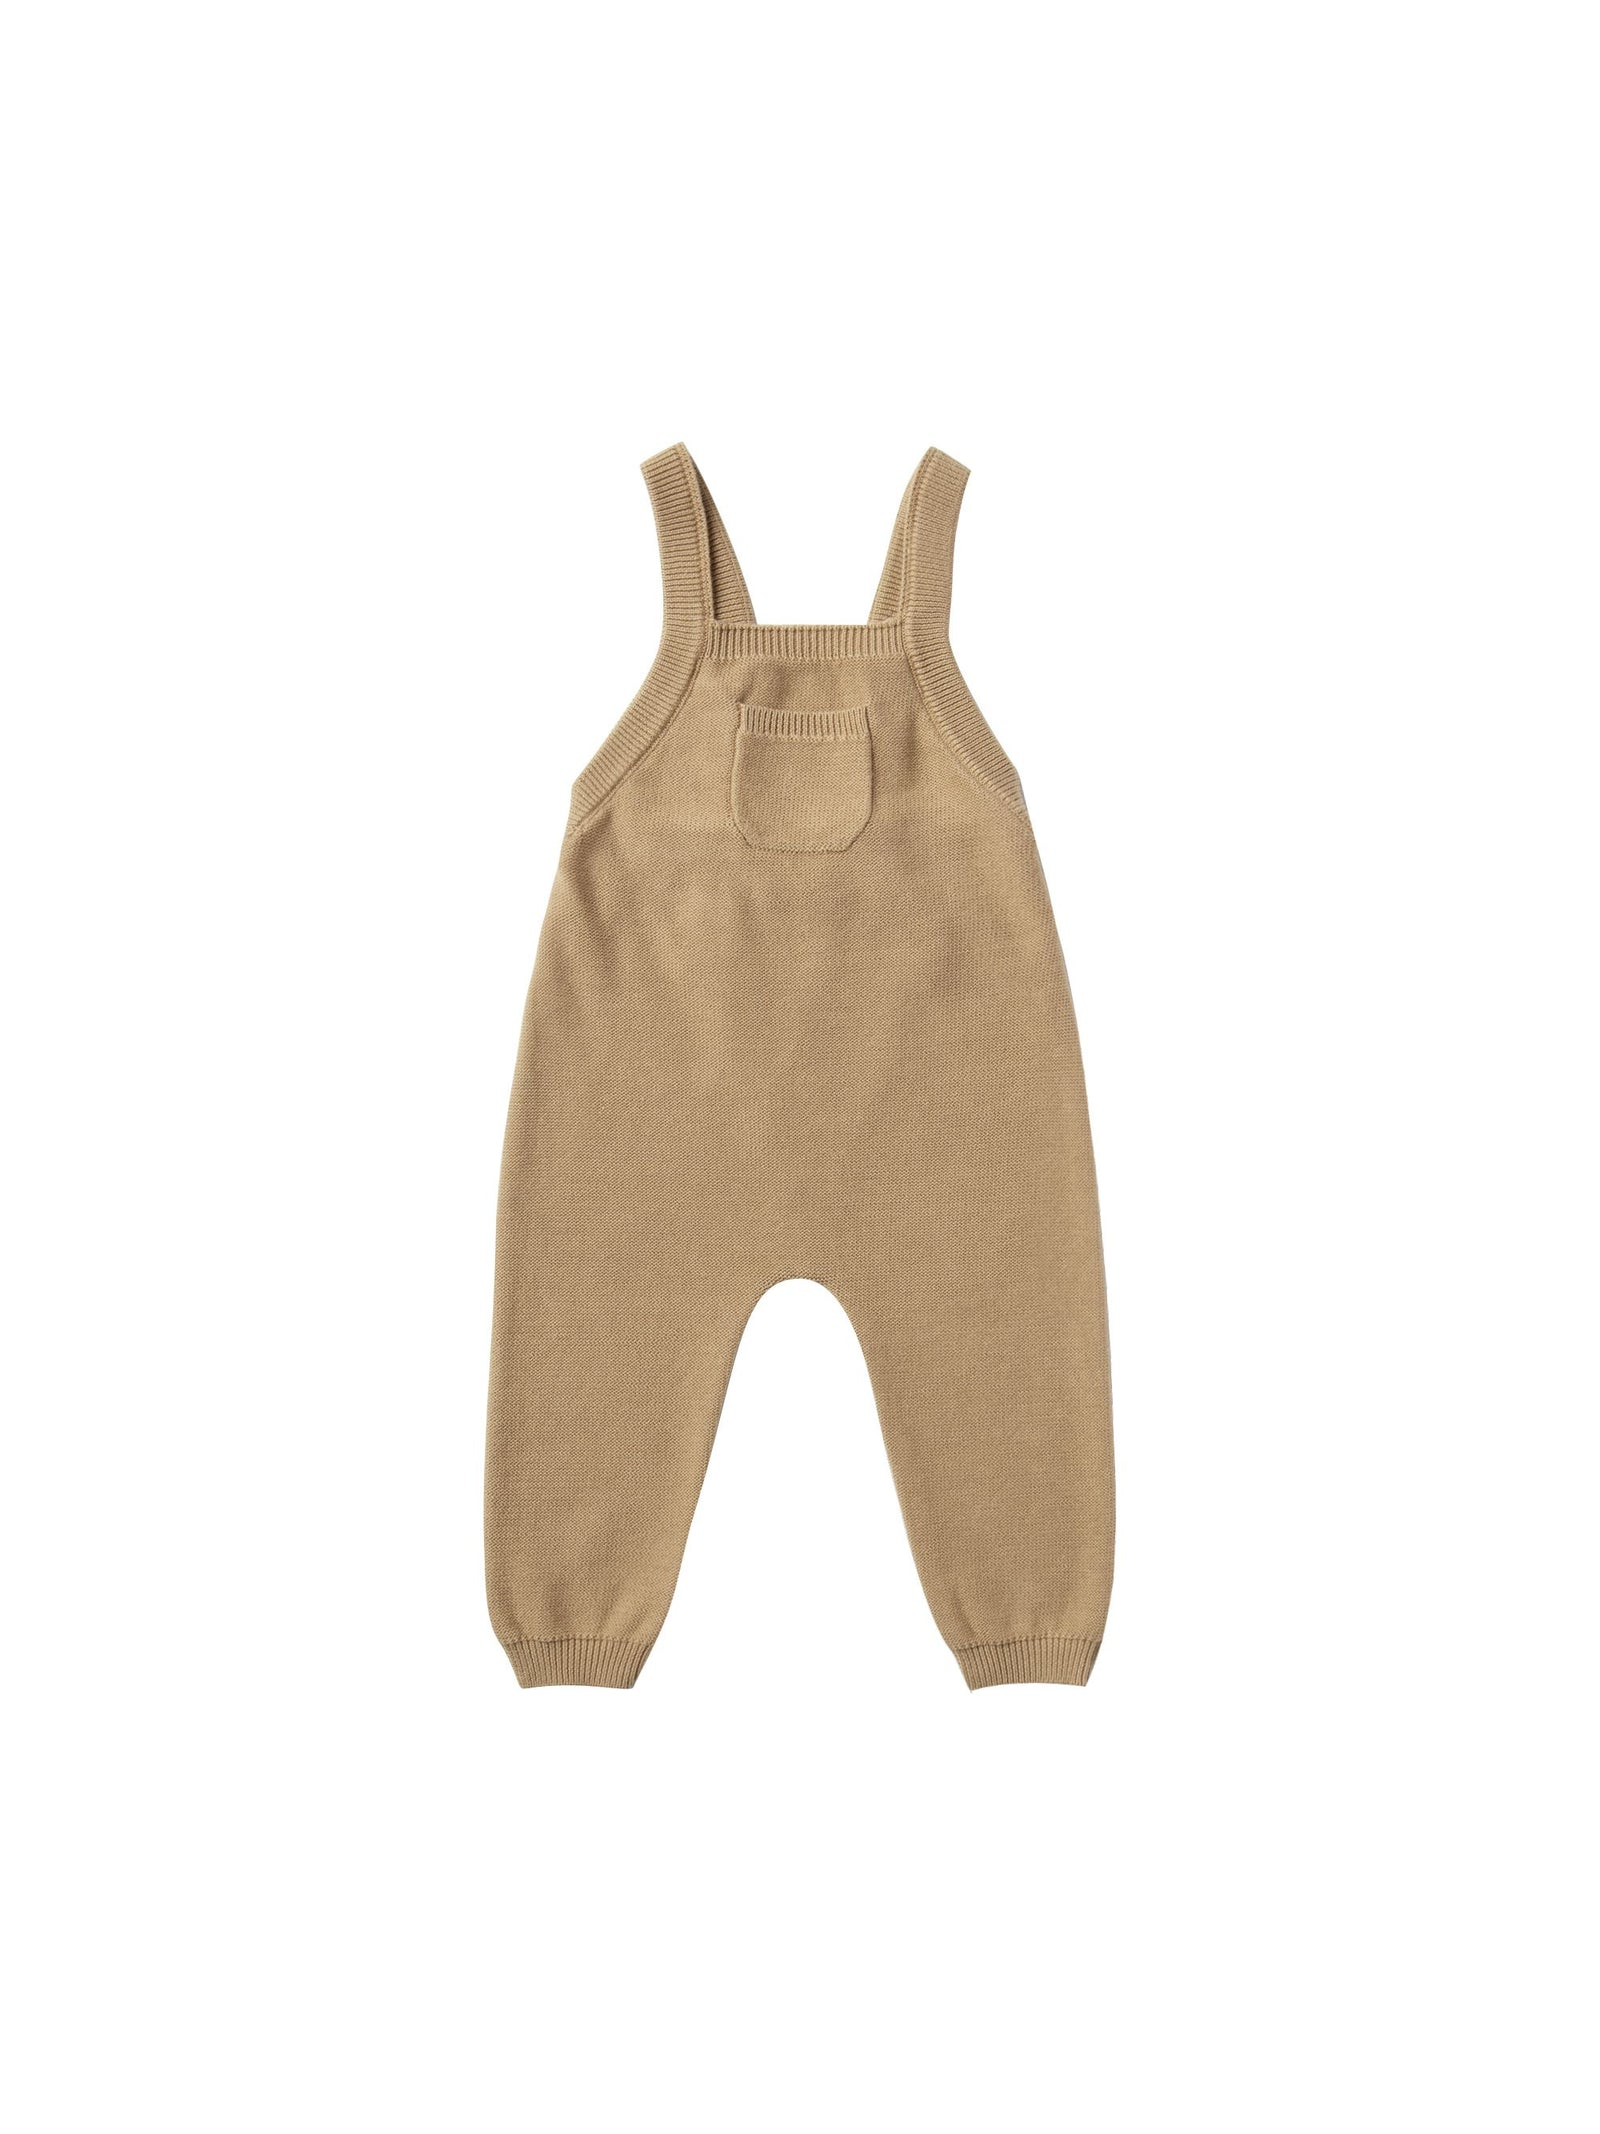 Knit Overall - Honey